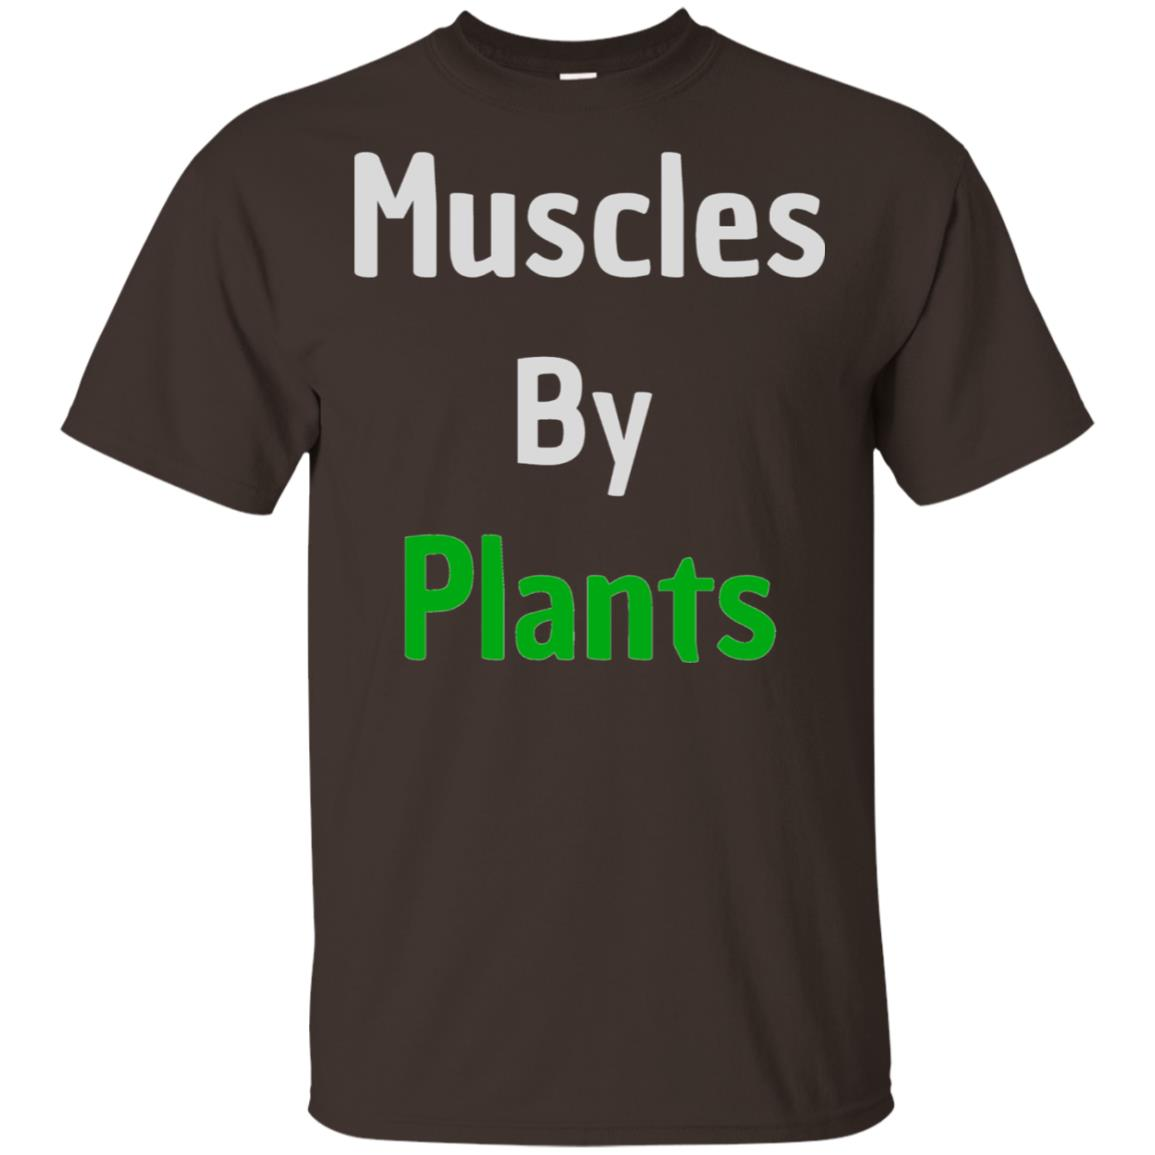 Muscles by Plants Workout Plant Powered Unisex Short Sleeve